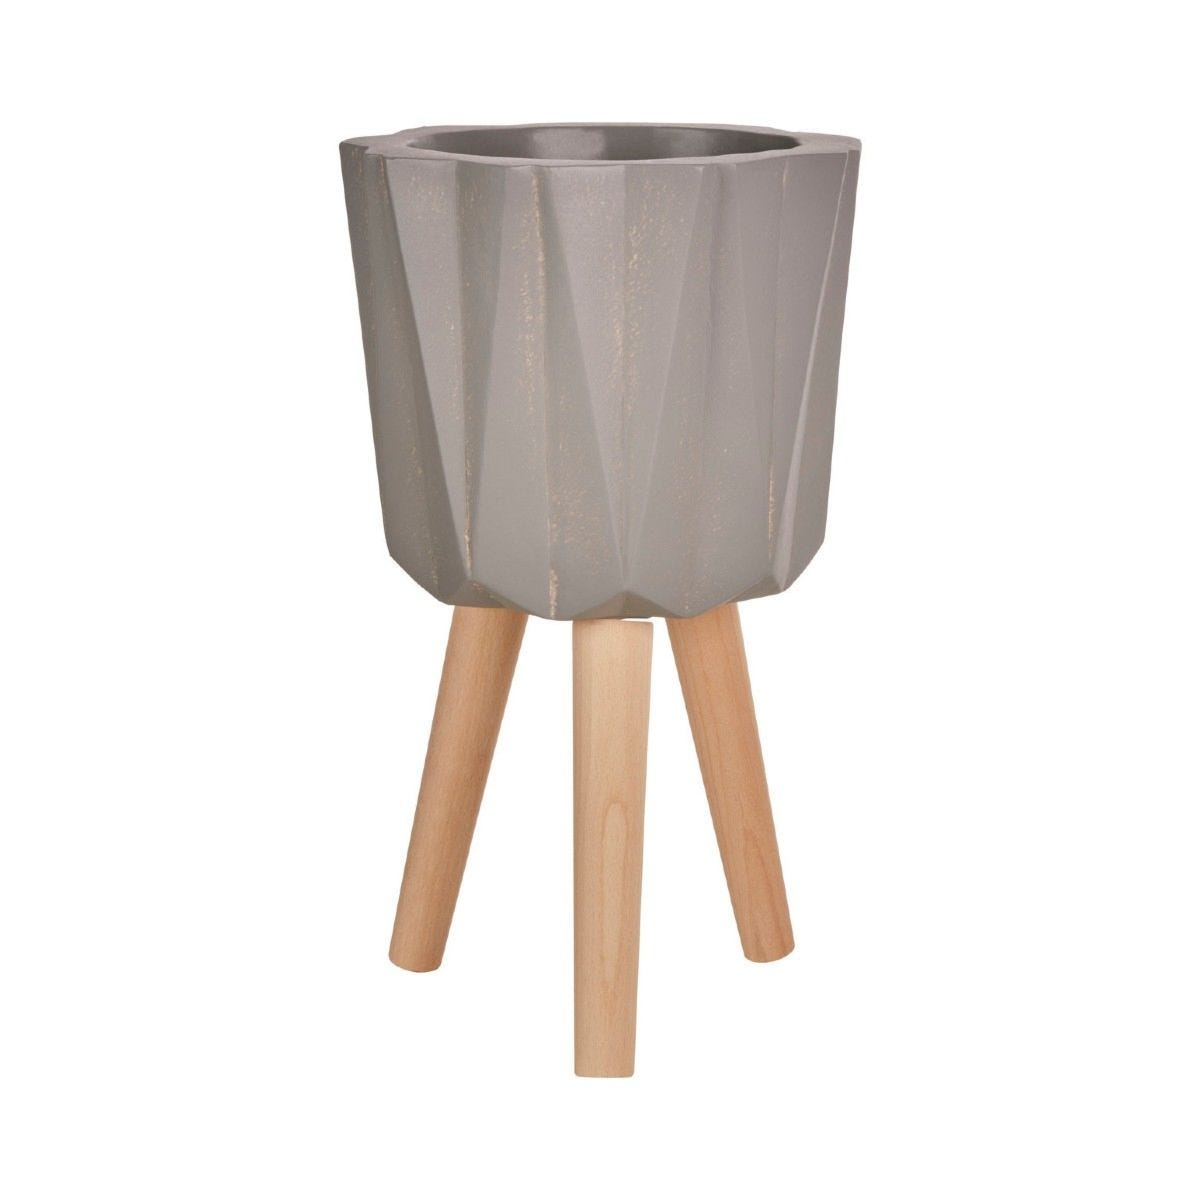 Small Multi-Faceted Planter in a Grey Finish Magnesia Fibreglass with Natural Beech Wood Legs